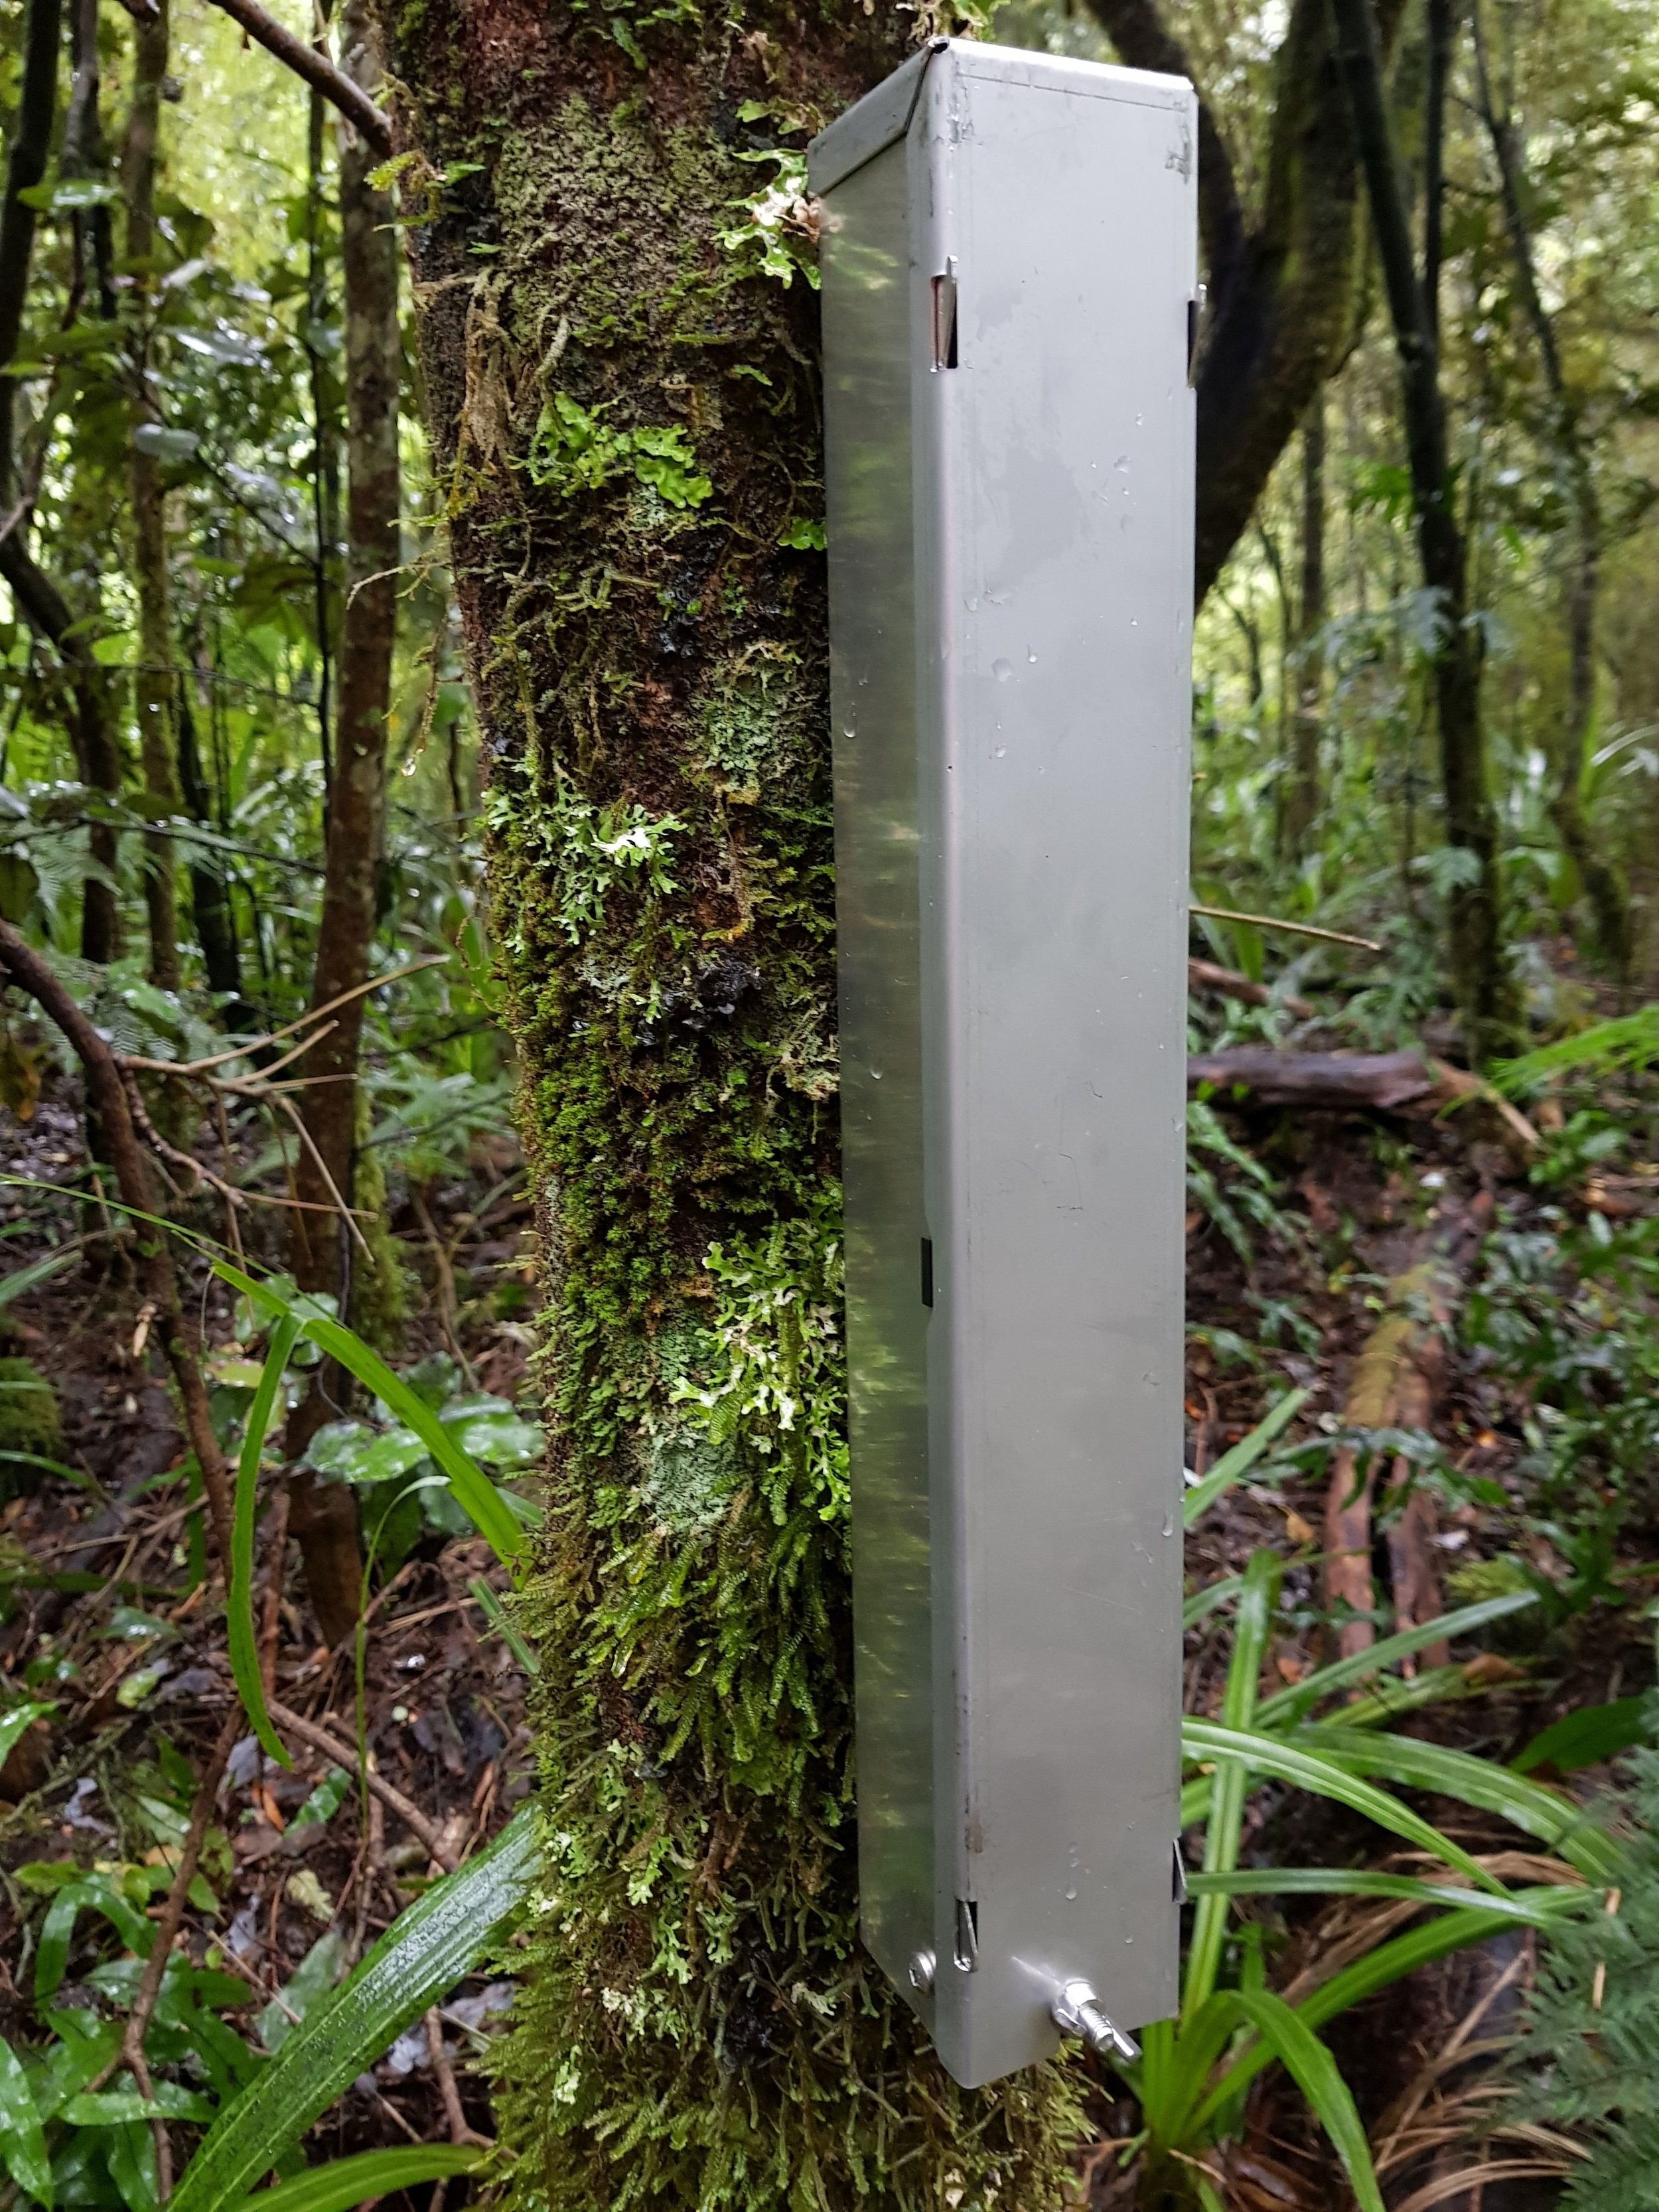 Tree-mounted automated lure dispenser, Perth Valley. Photo on right shows dispenser with cover removed.